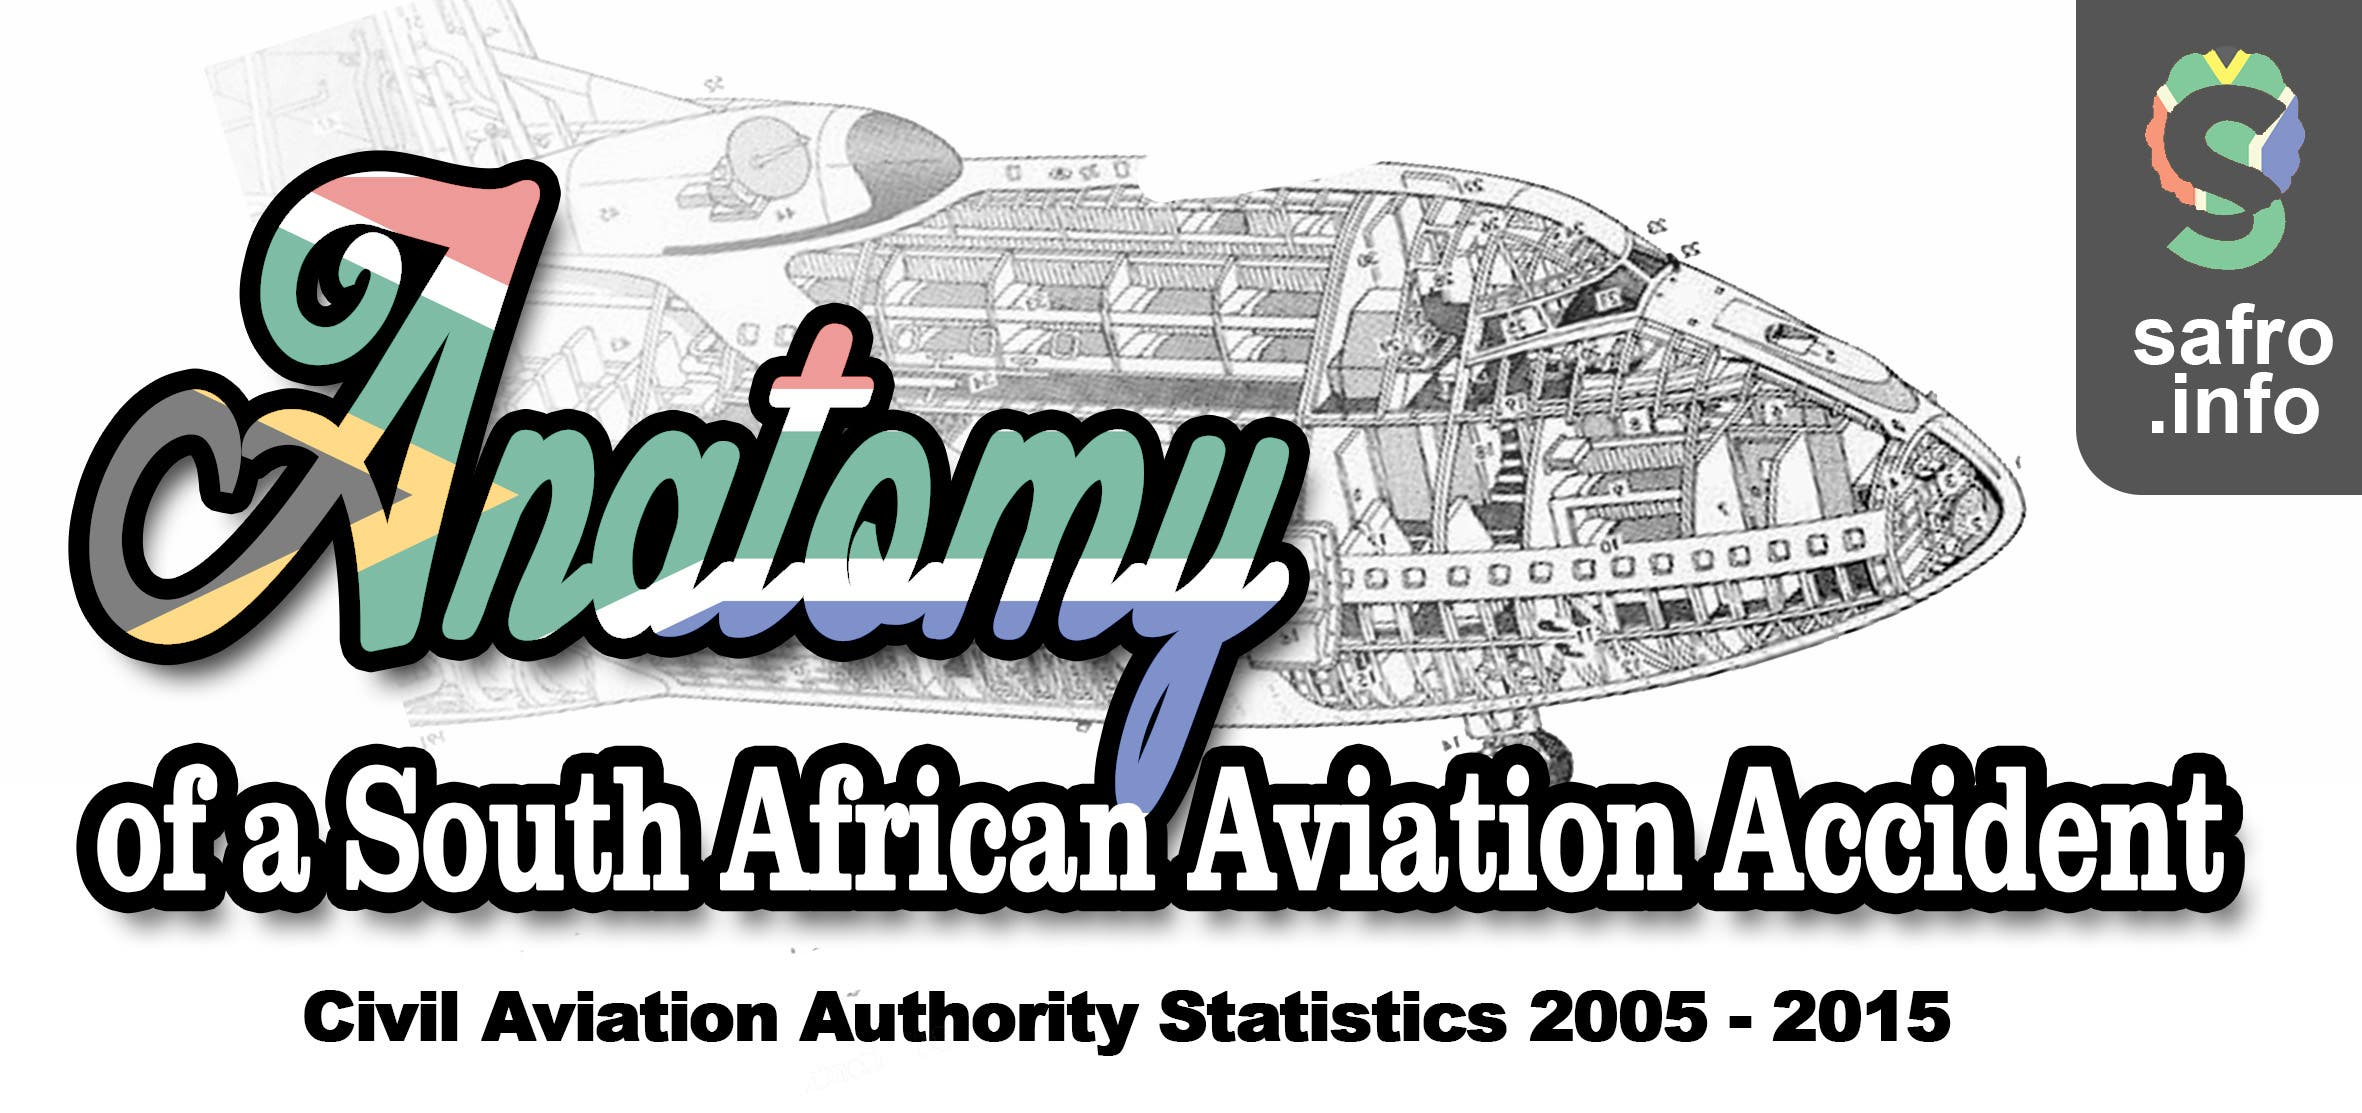 Outstanding Anatomy Of A South African Aviation Accident Sapeople Your Hairstyle Inspiration Daily Dogsangcom